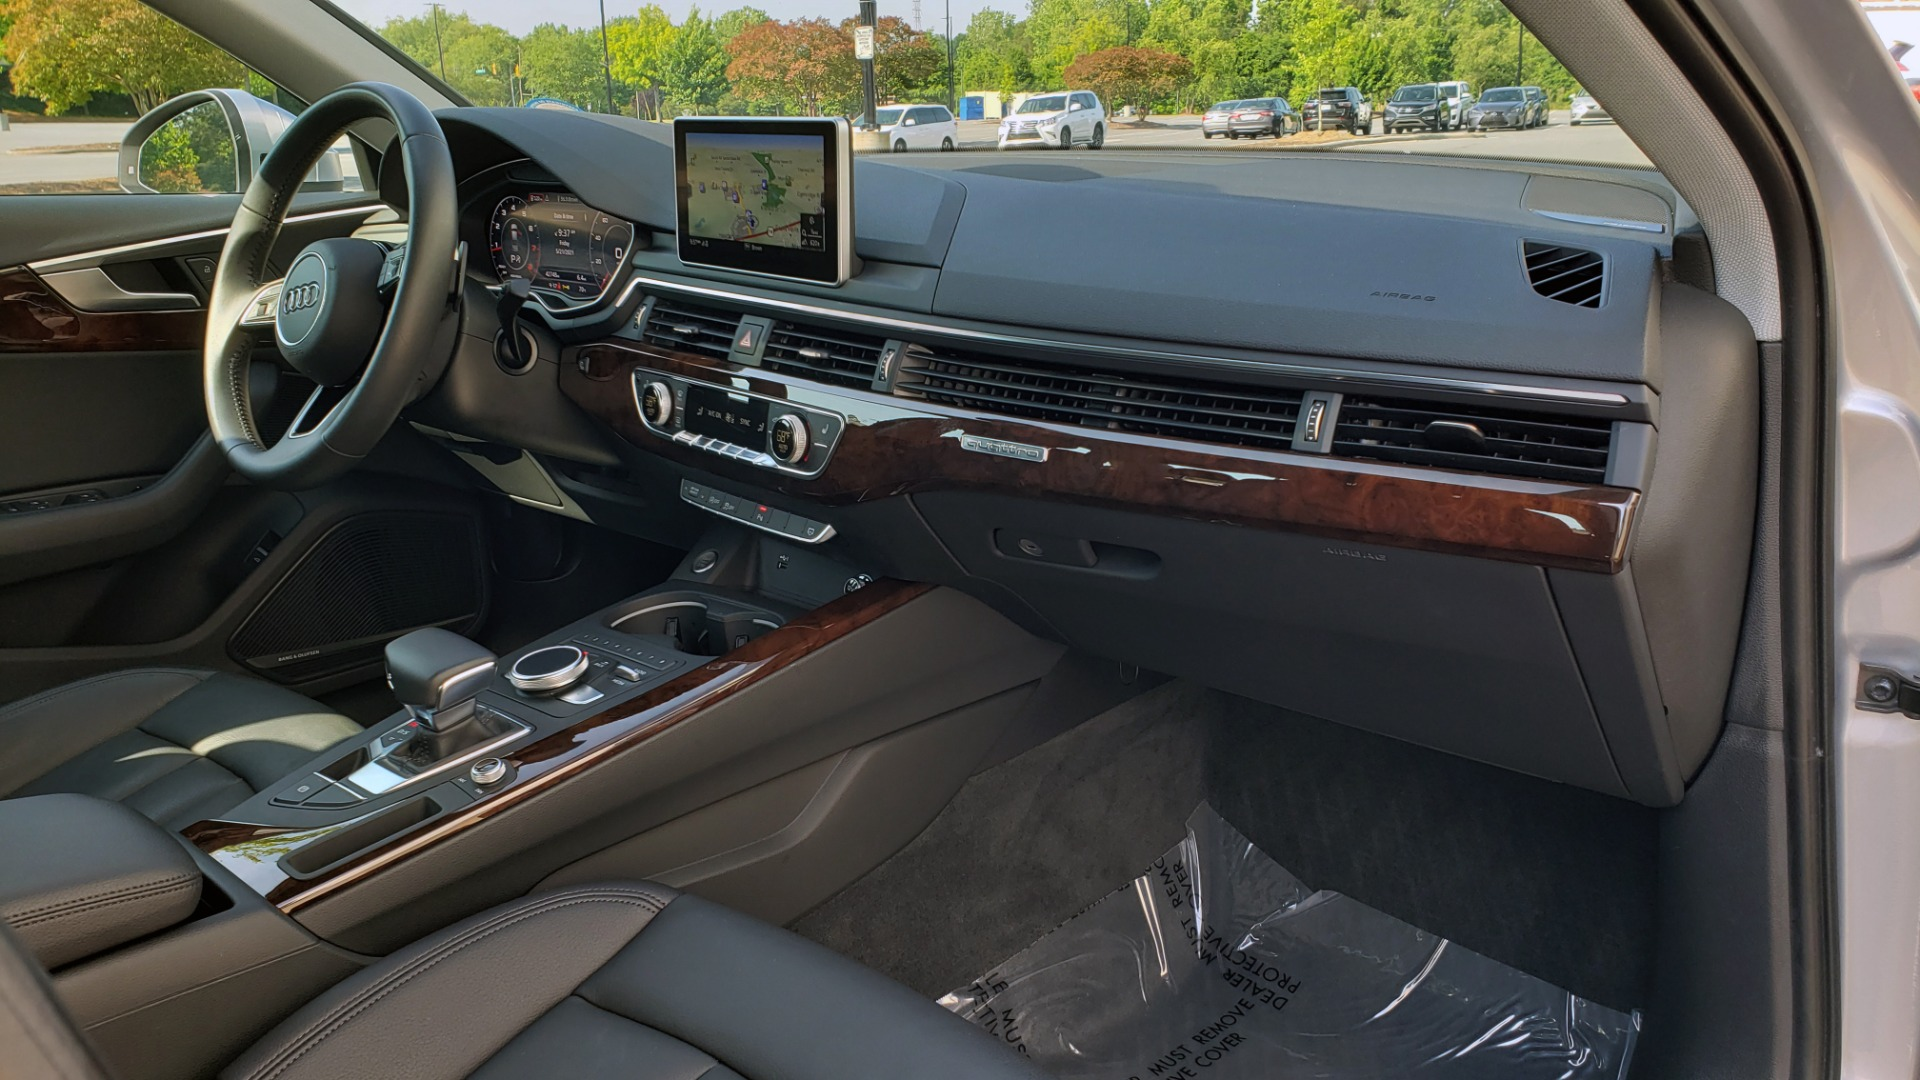 Used 2018 Audi A4 PREMIUM PLUS 2.0T / NAV / SUNROOF / B&O SND / CLD WTHR / REARVIEW for sale $29,395 at Formula Imports in Charlotte NC 28227 69